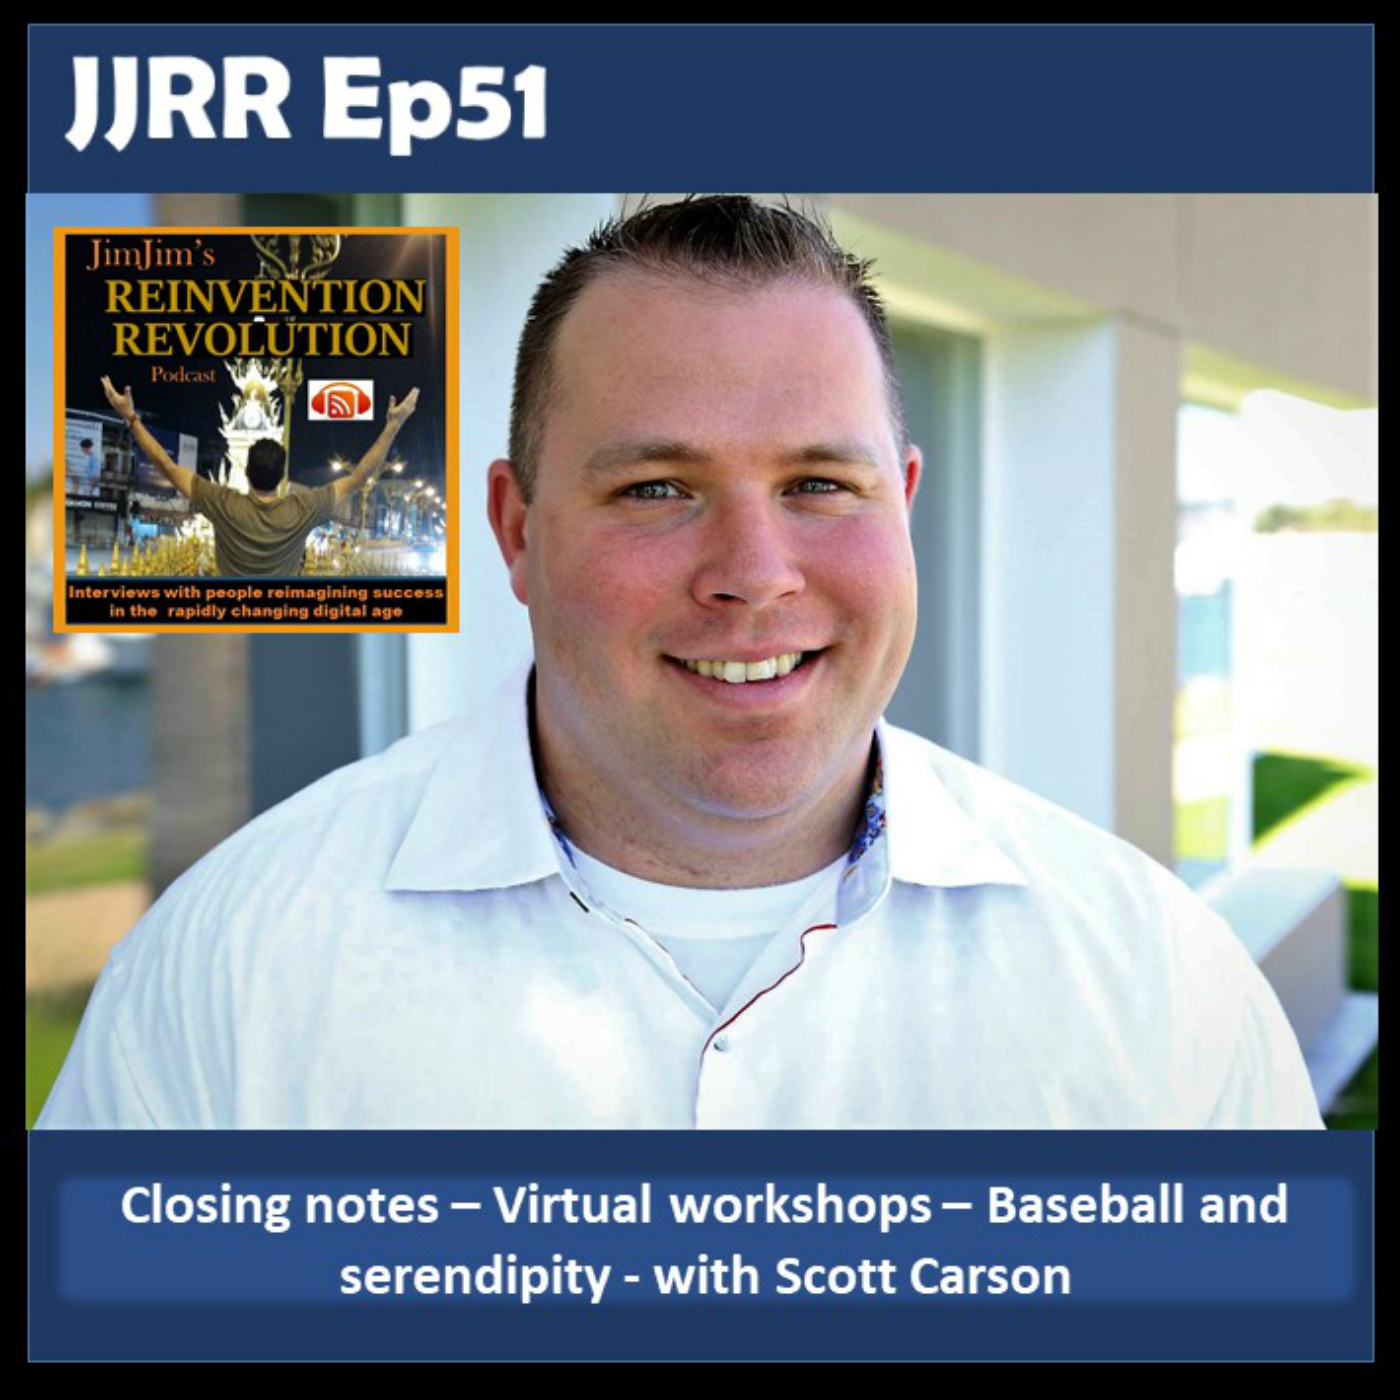 JJRR Ep51 Closing notes – Virtual workshops – Baseball and serendipity – with Scott Carson